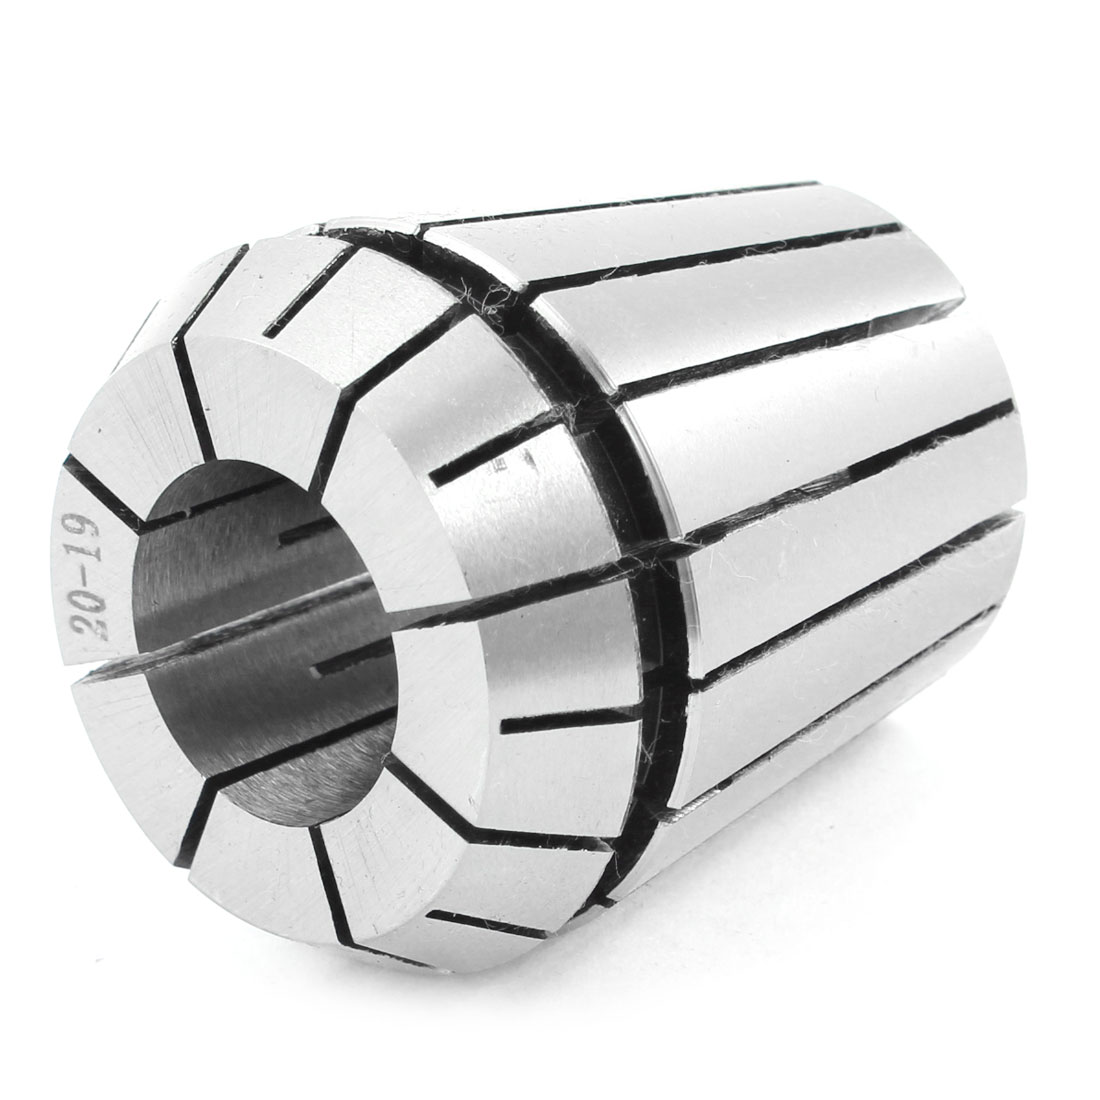 Clamping Range 19-20mm ER40 Precision Spring Collet Reaming Part